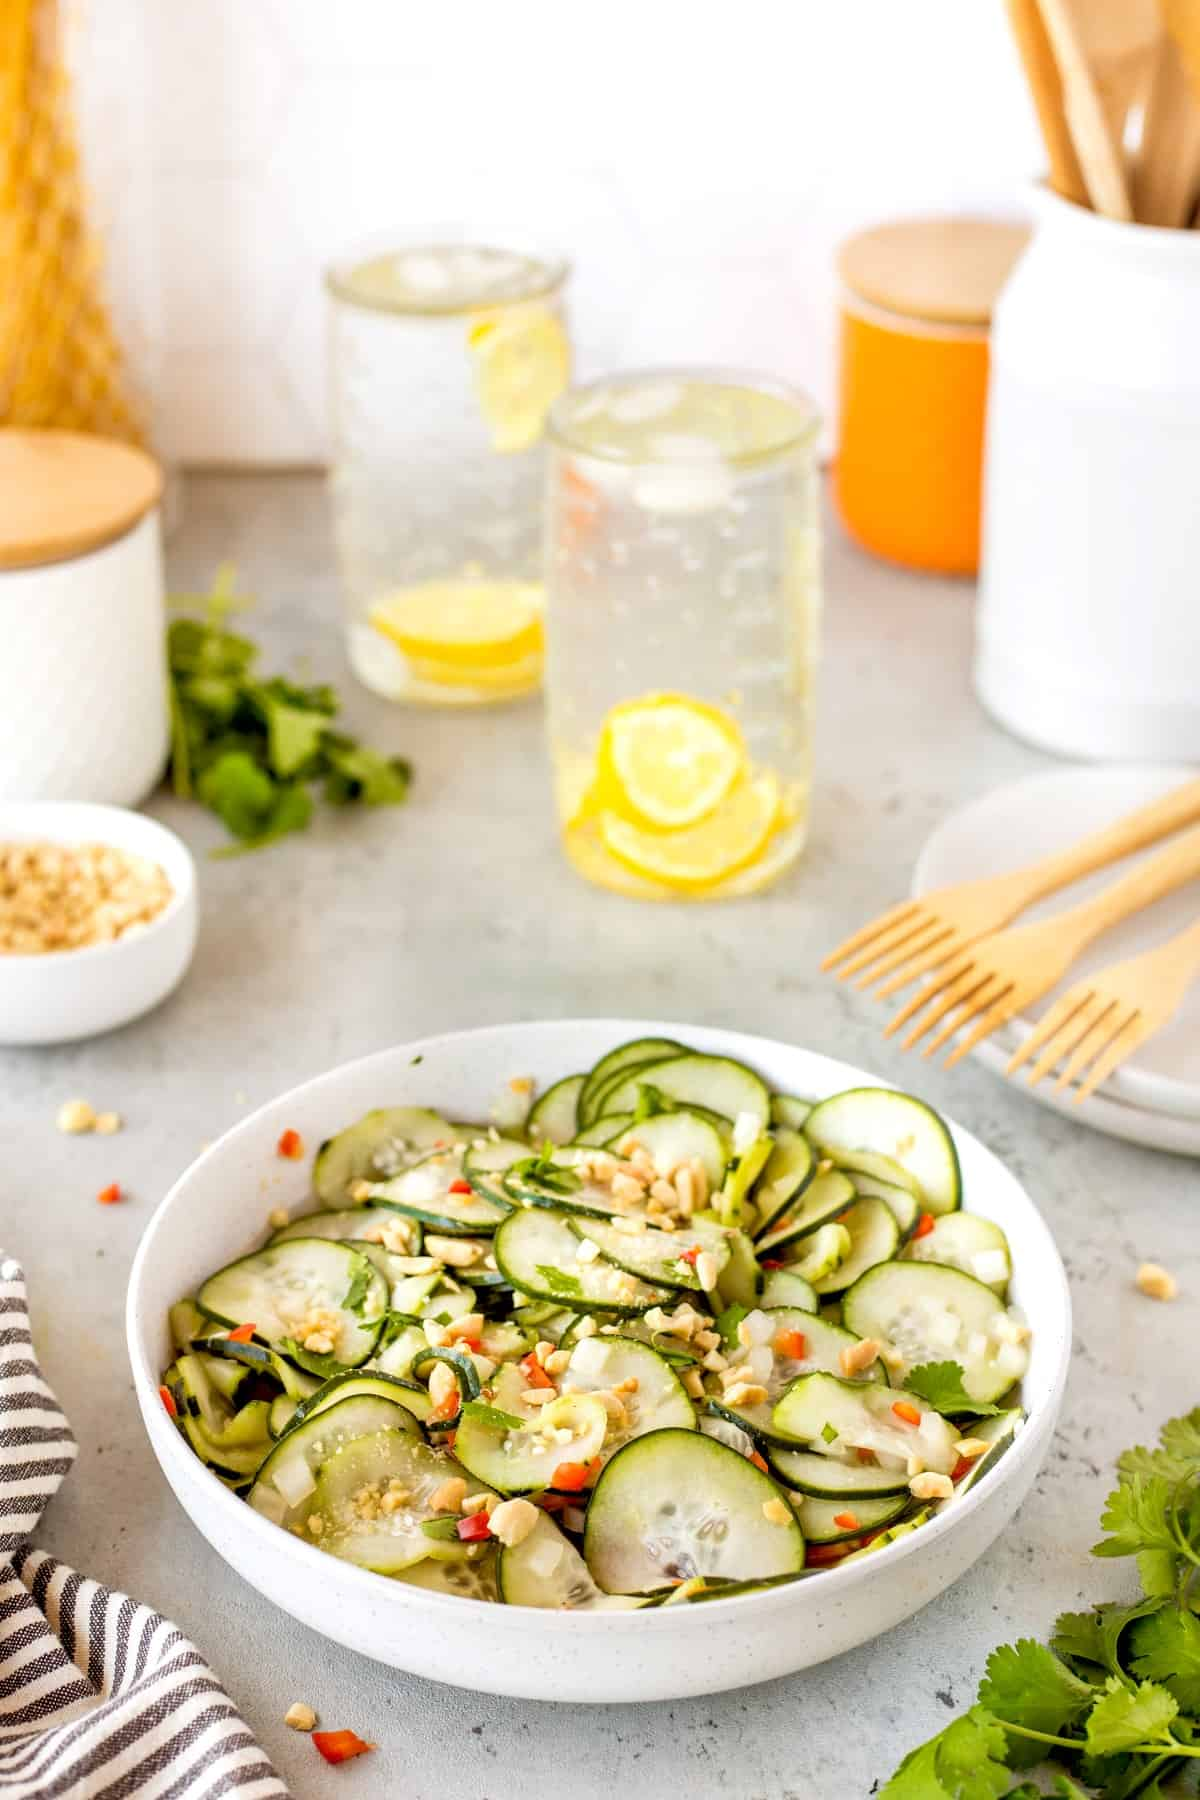 Asian Cucumber salad with chopped peanuts and cilantro on top.